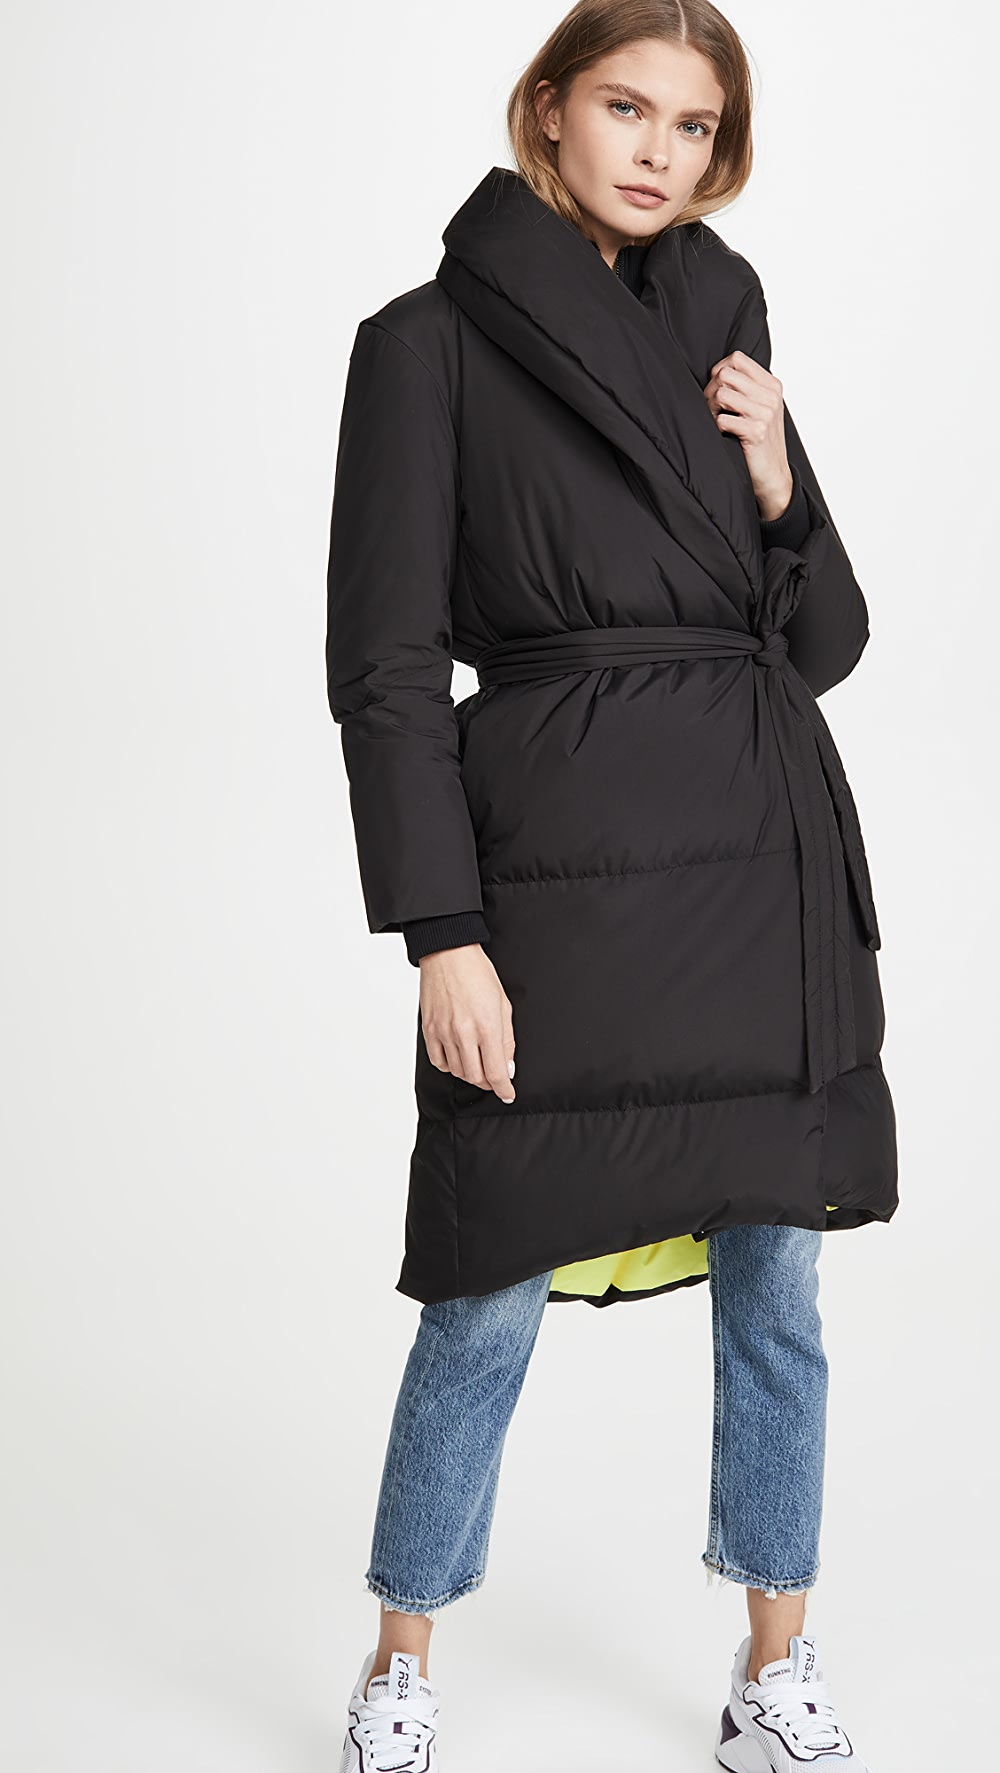 Able Alice + Olivia - Doyle Rib Combo Puffer With Belt Bracing Up The Whole System And Strengthening It